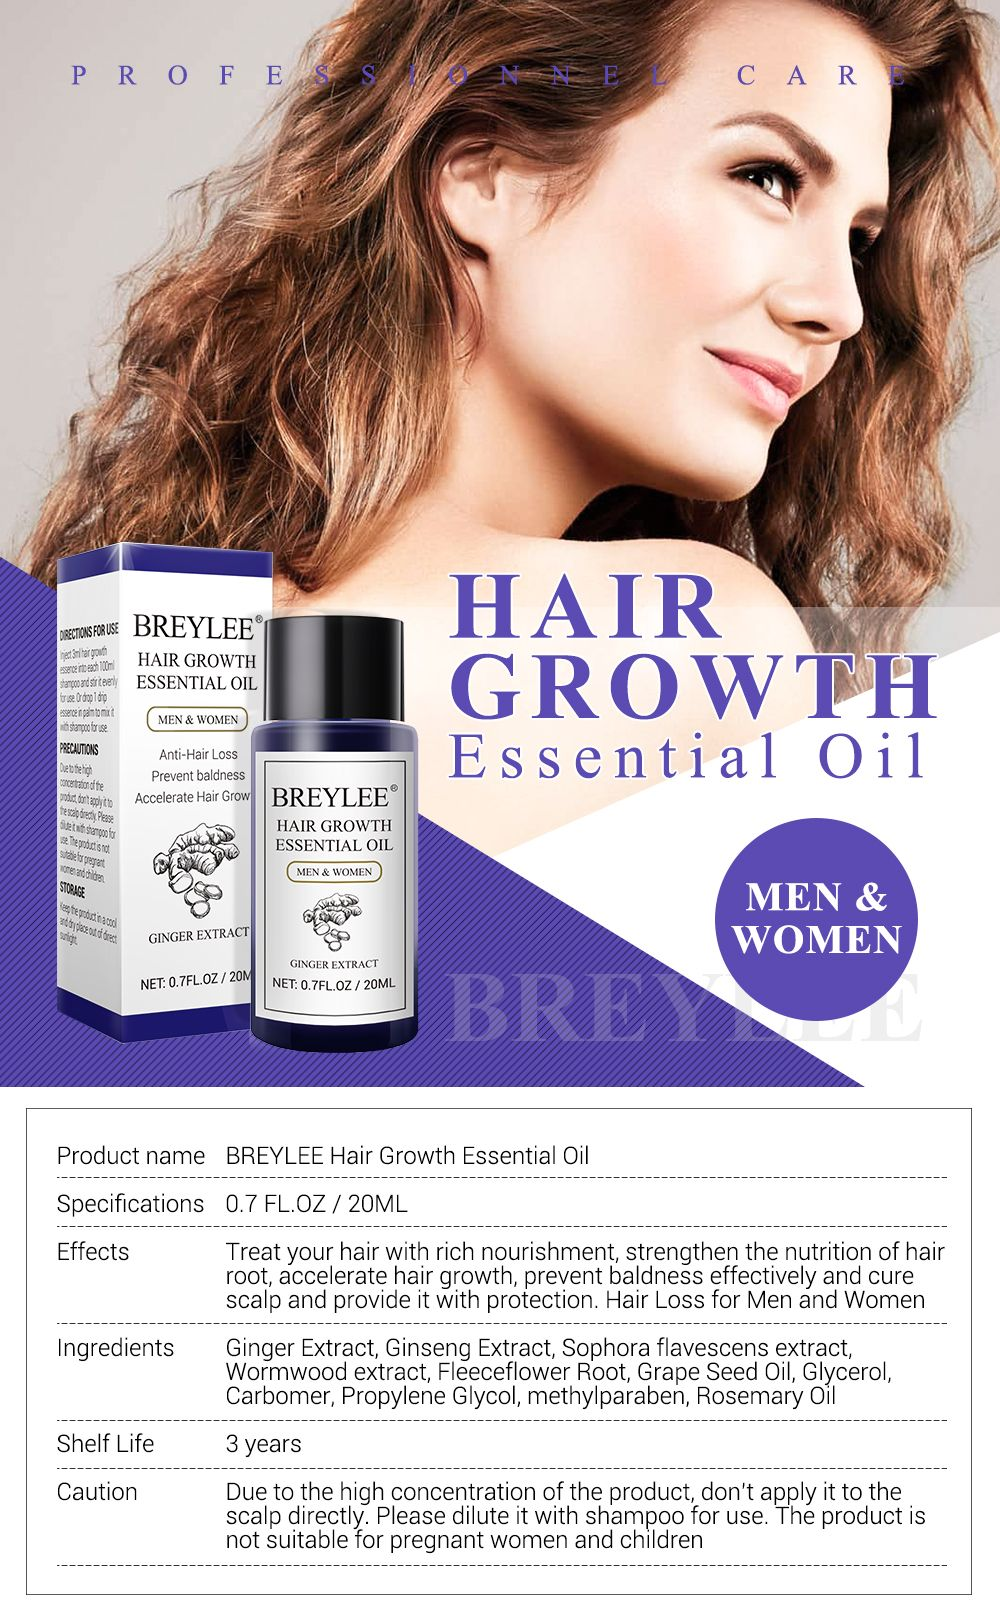 Vitamins for Hair Growth} and Treat your hair with rich nourishment, strengthen the nutrition of hair root, accelerate hair growth, prevent baldness effectively and cure scalp and provide it with protection. Hair Loss for Men and Women